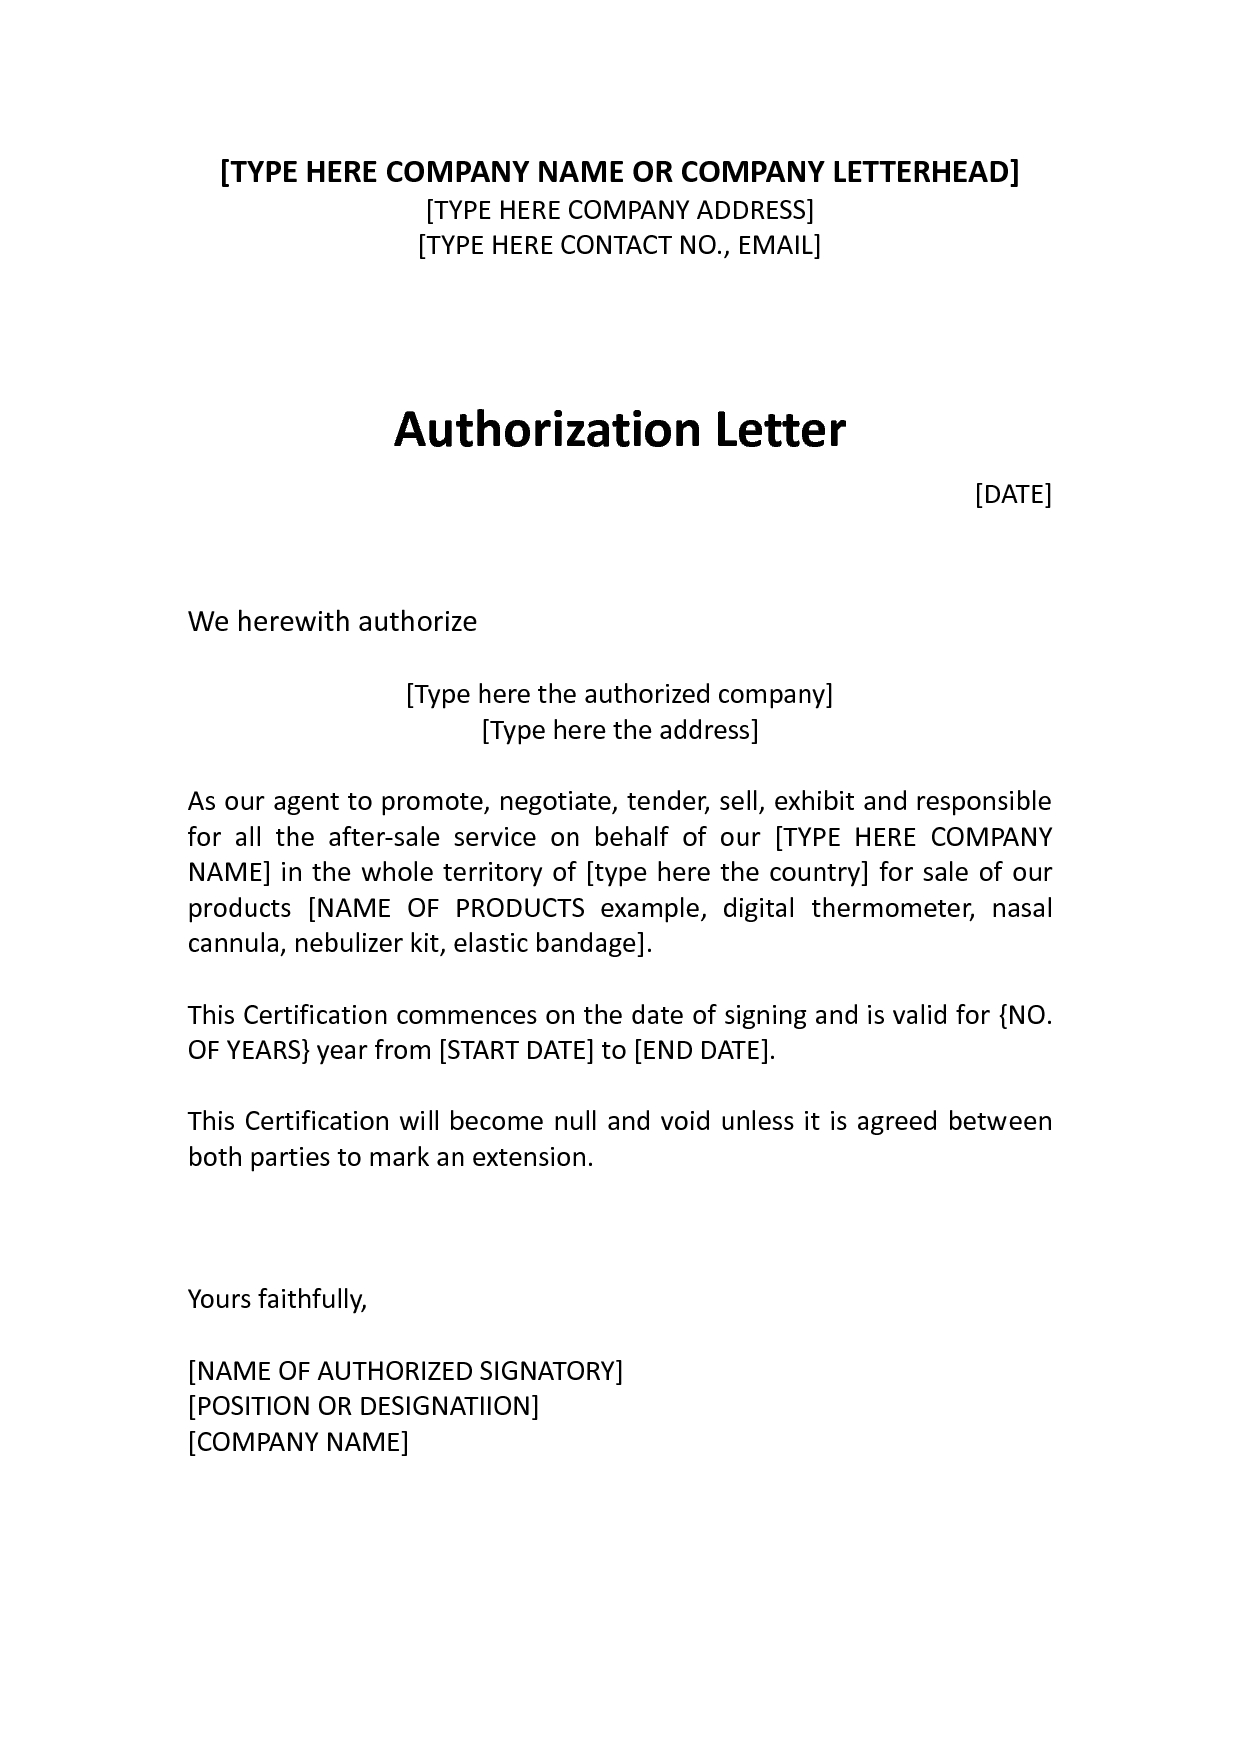 Letter Of Intent to Sell Property Template - Authorization Distributor Letter Sample Distributor Dealer